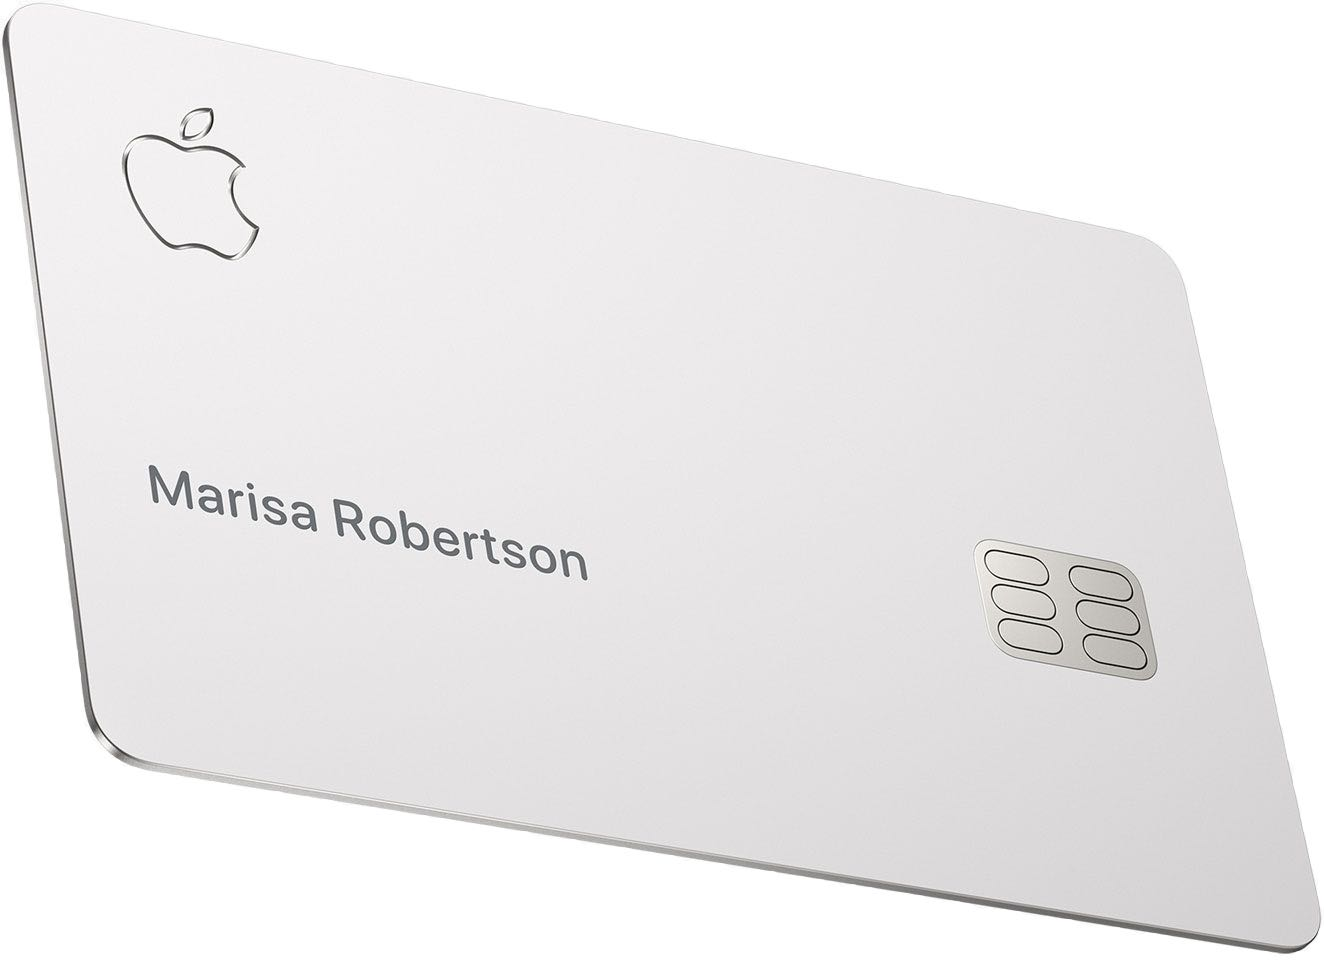 Apple Card doesn't support exporting financial data to third